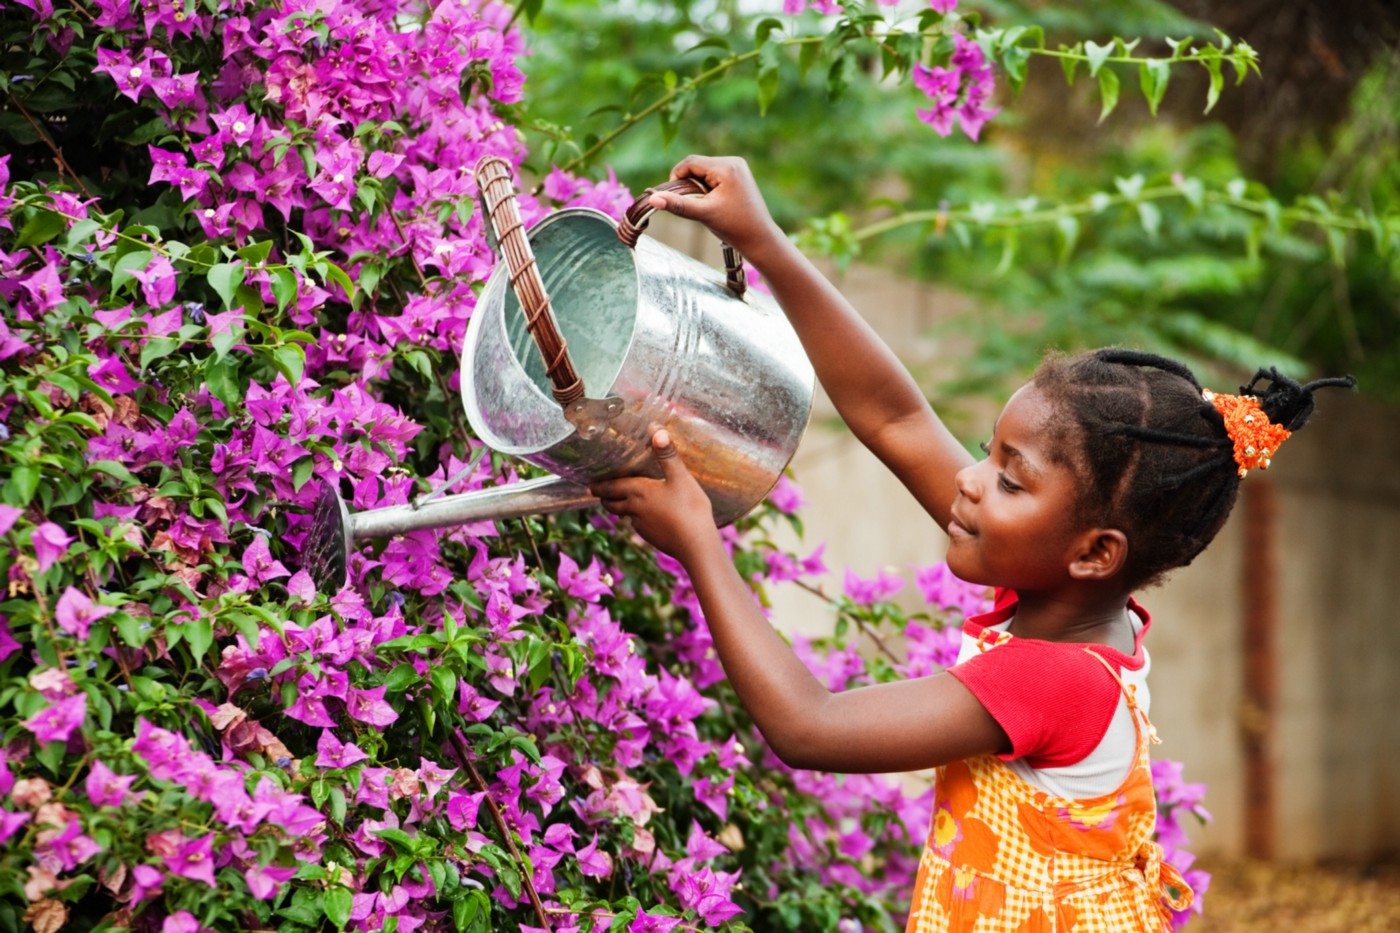 A girl waters plants.